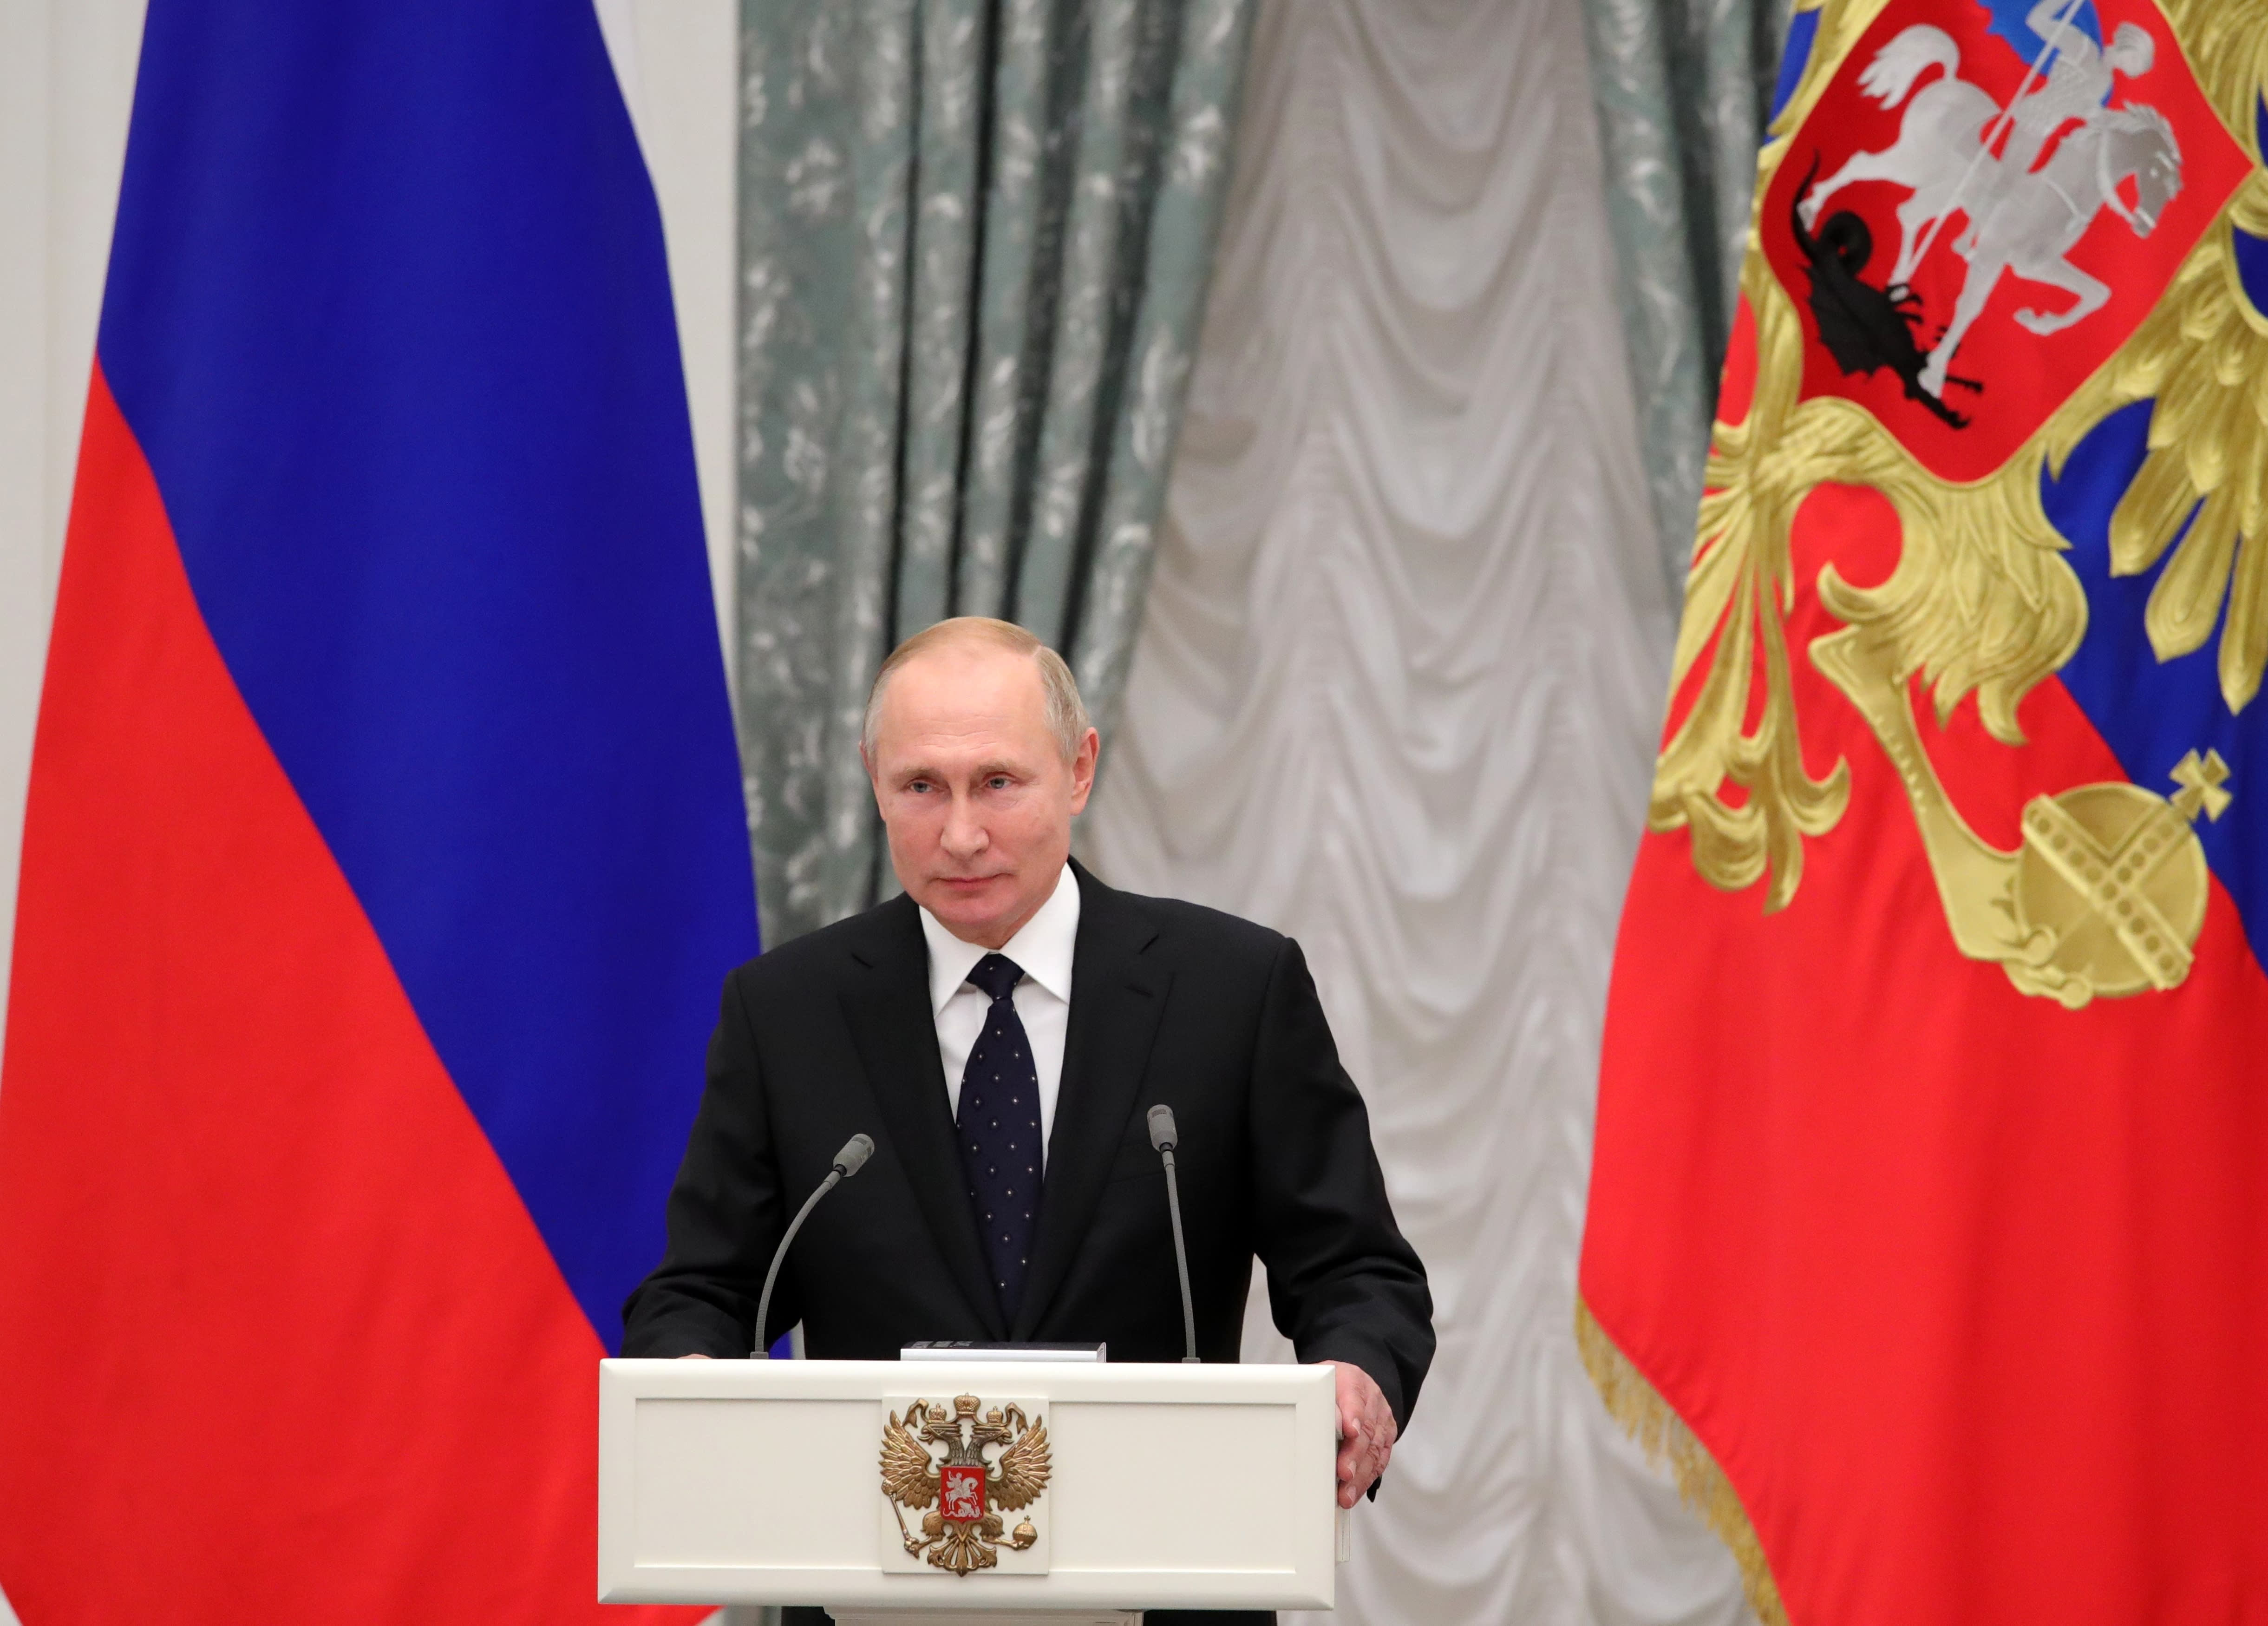 Russian President Vladimir Putin delivers his speech at the State Awards ceremony in the Kremlin in Moscow, Russia, Thursday, Nov. 21, 2019. (Alexei Druzhinin, Sputnik, Kremlin Pool Photo via AP)